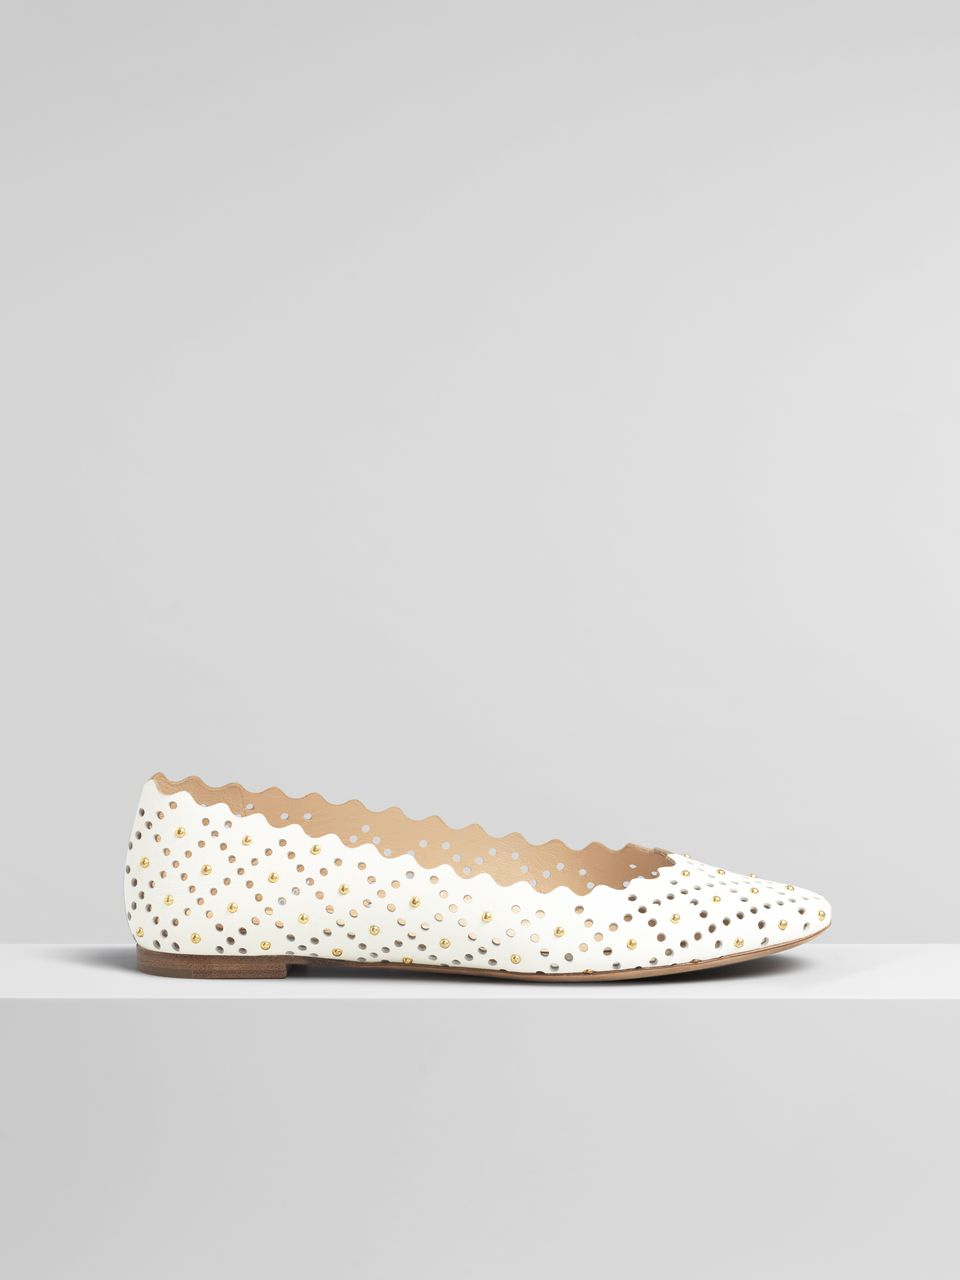 Lauren Ballerina Flat - Natural White